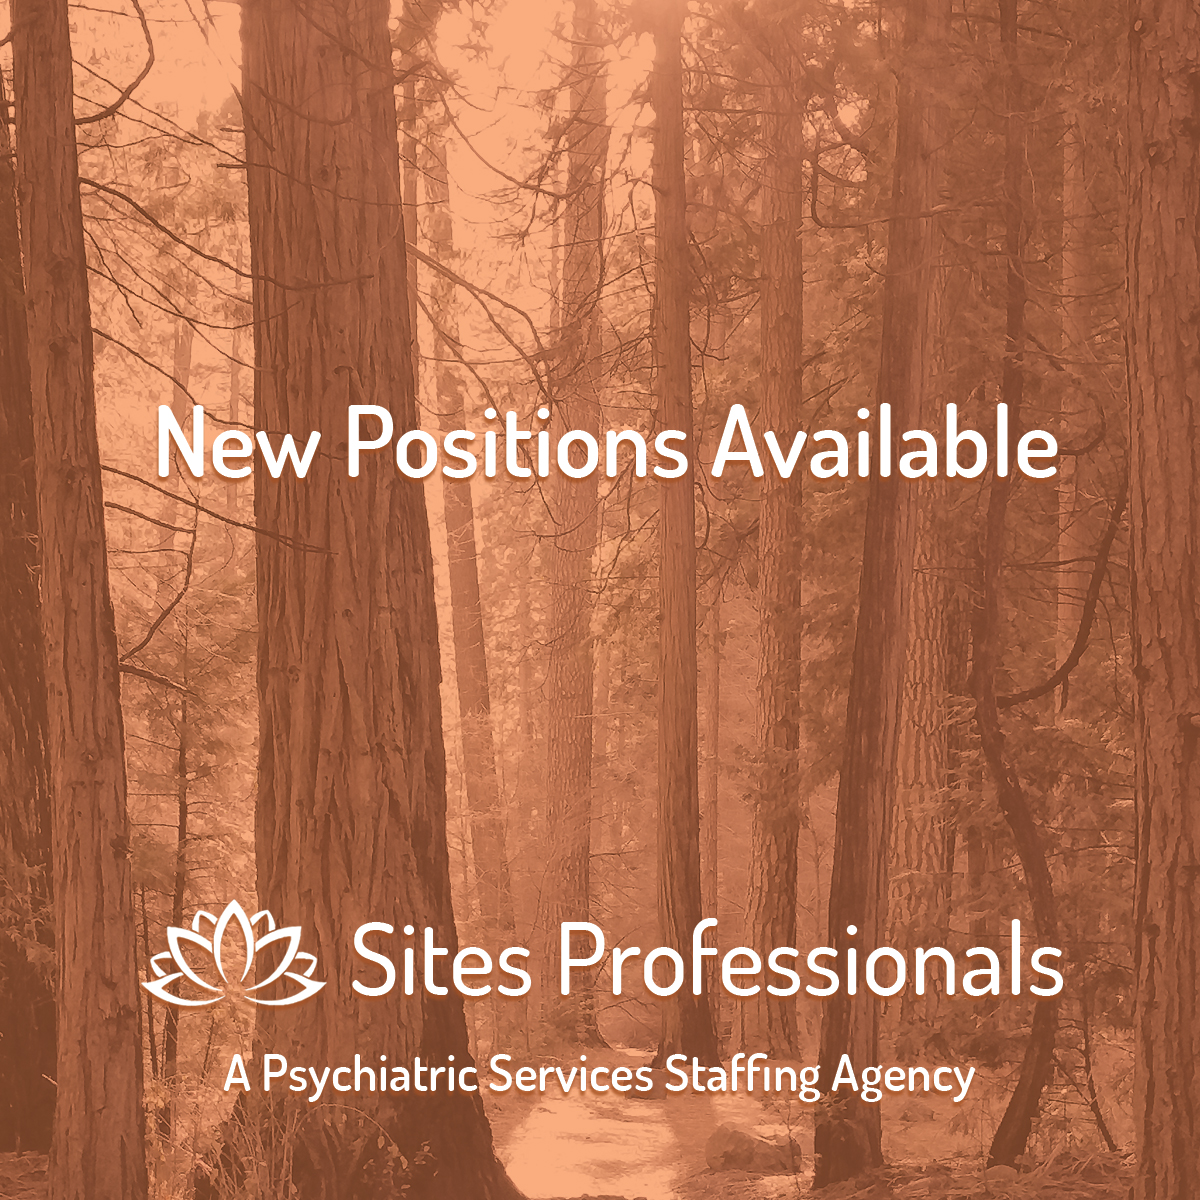 Psychiatrist Positions Available May 2019